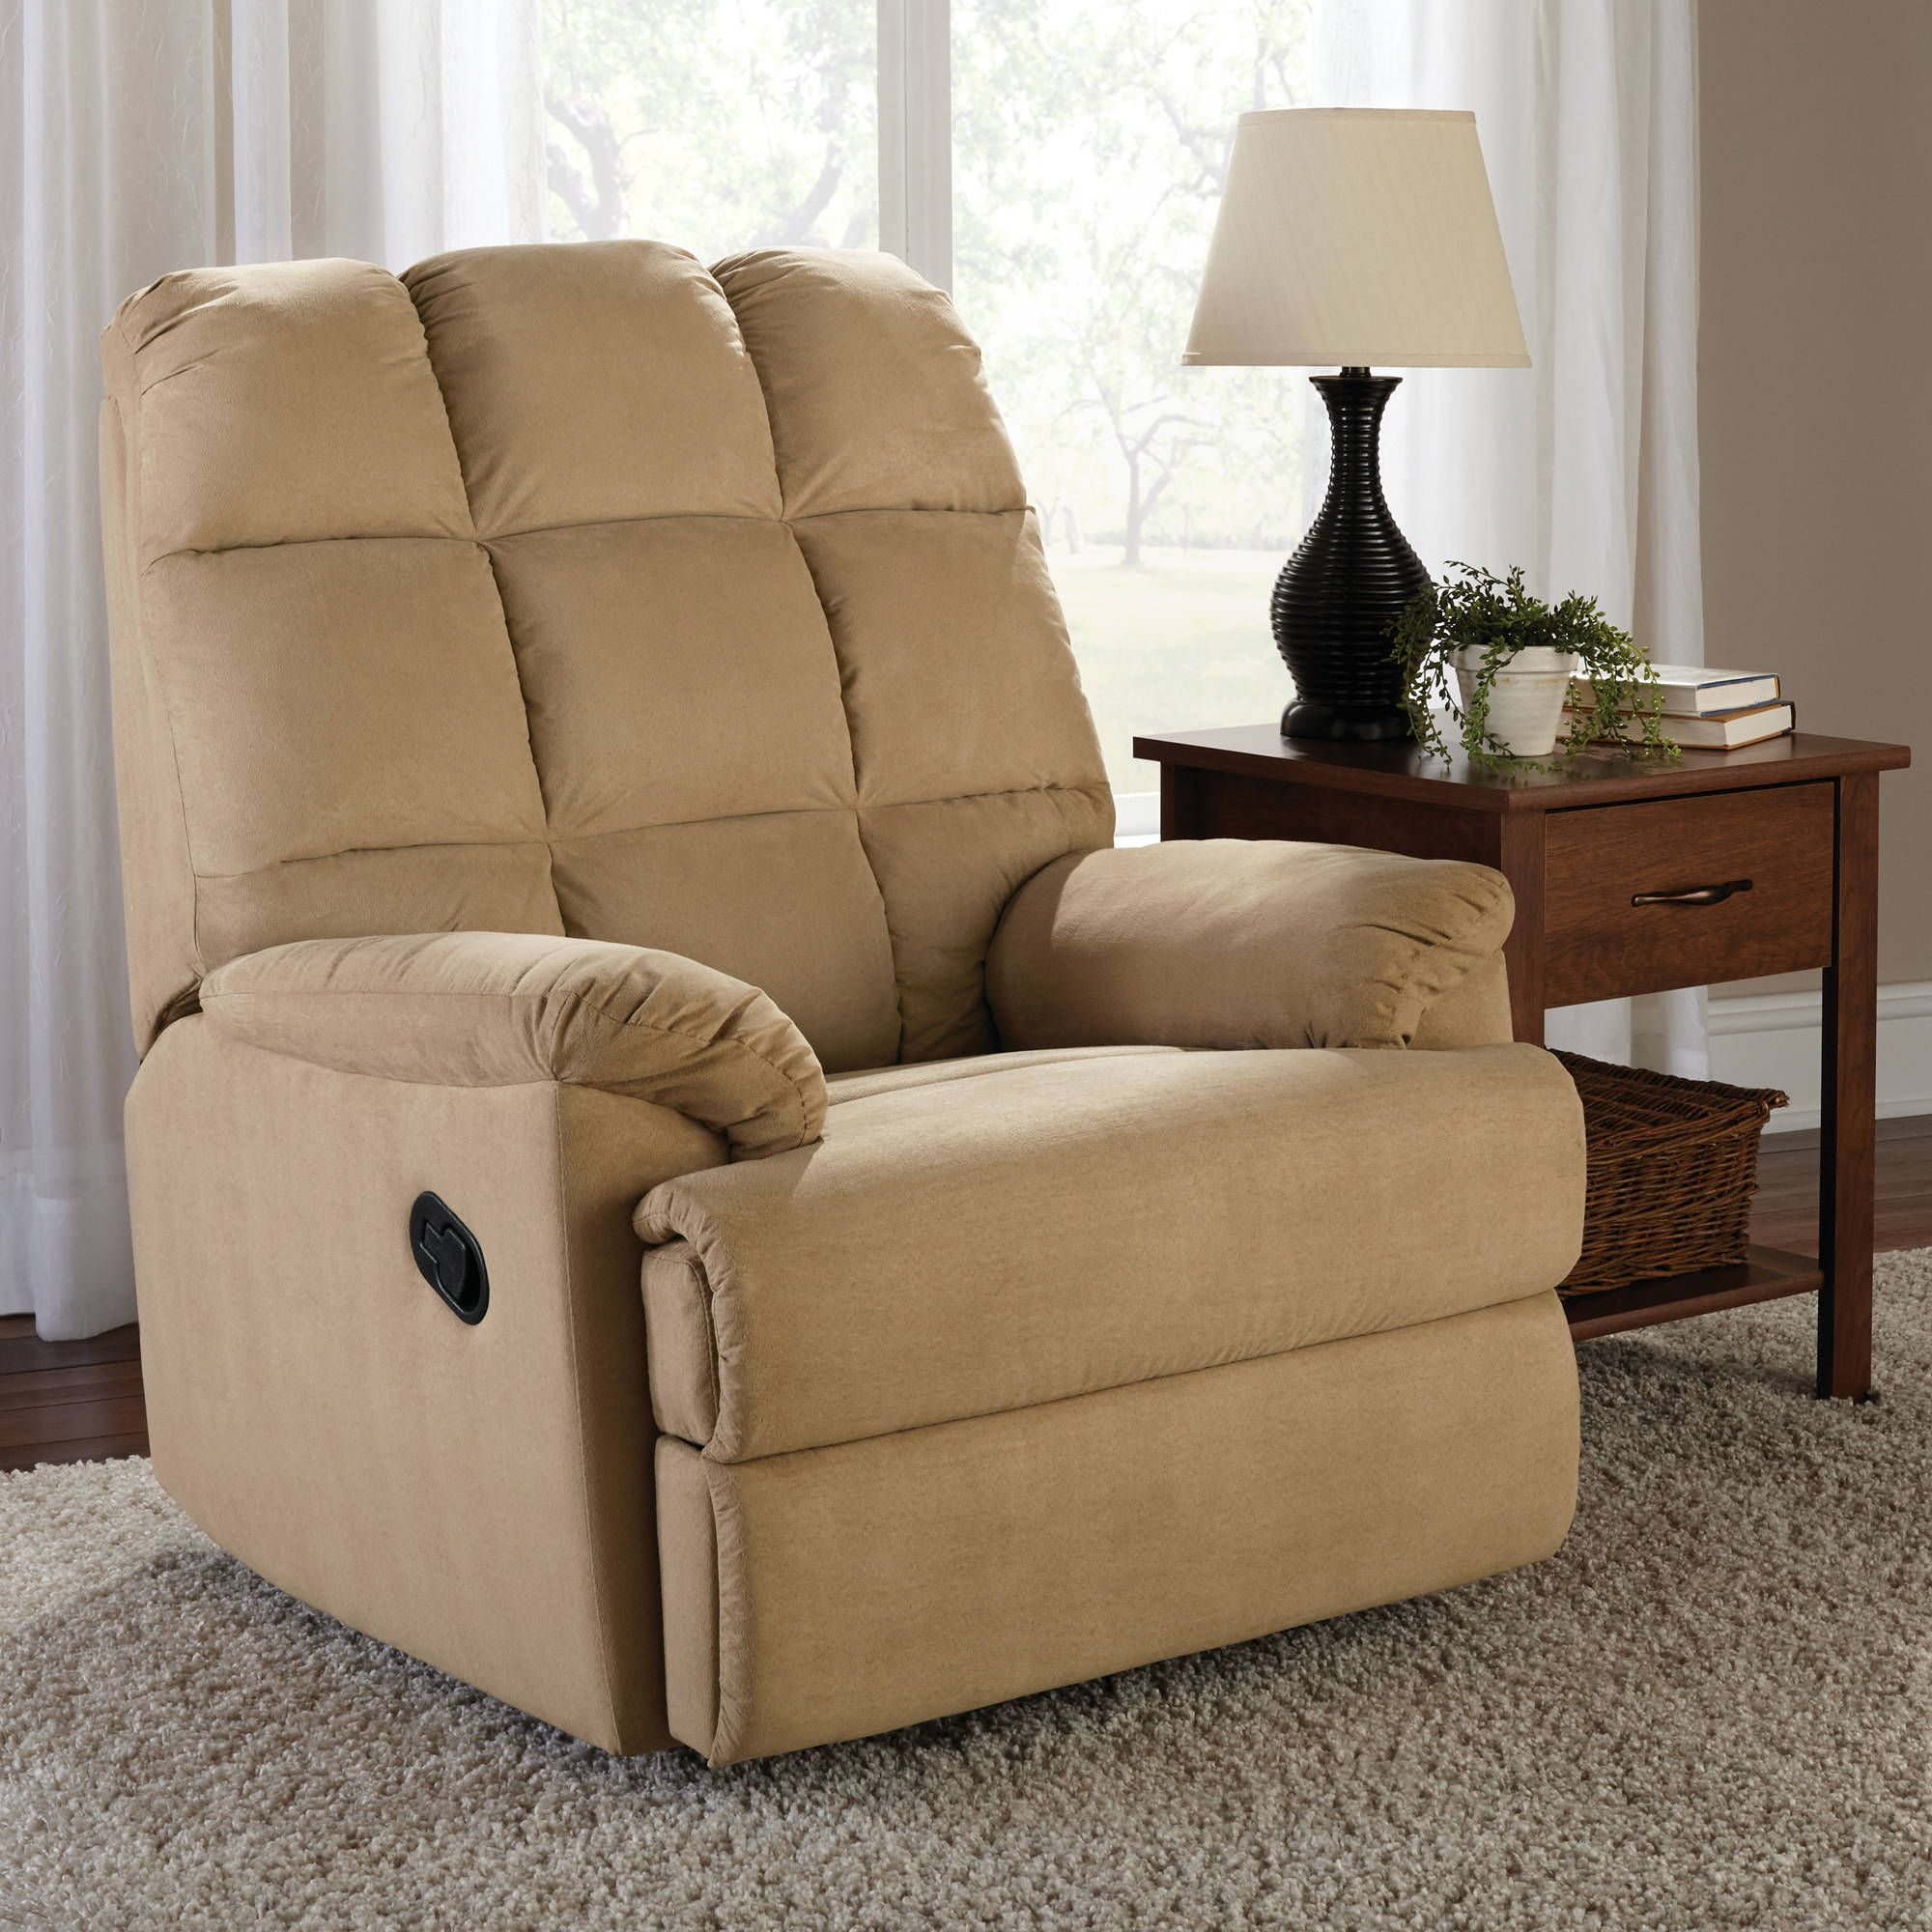 Shop For Recliners In Living Room Furniture. Buy Products Such As Oakwood  Microfiber Recliner, Multiple Colors, Mainstays Microsuede Rocker Recliner  At ...